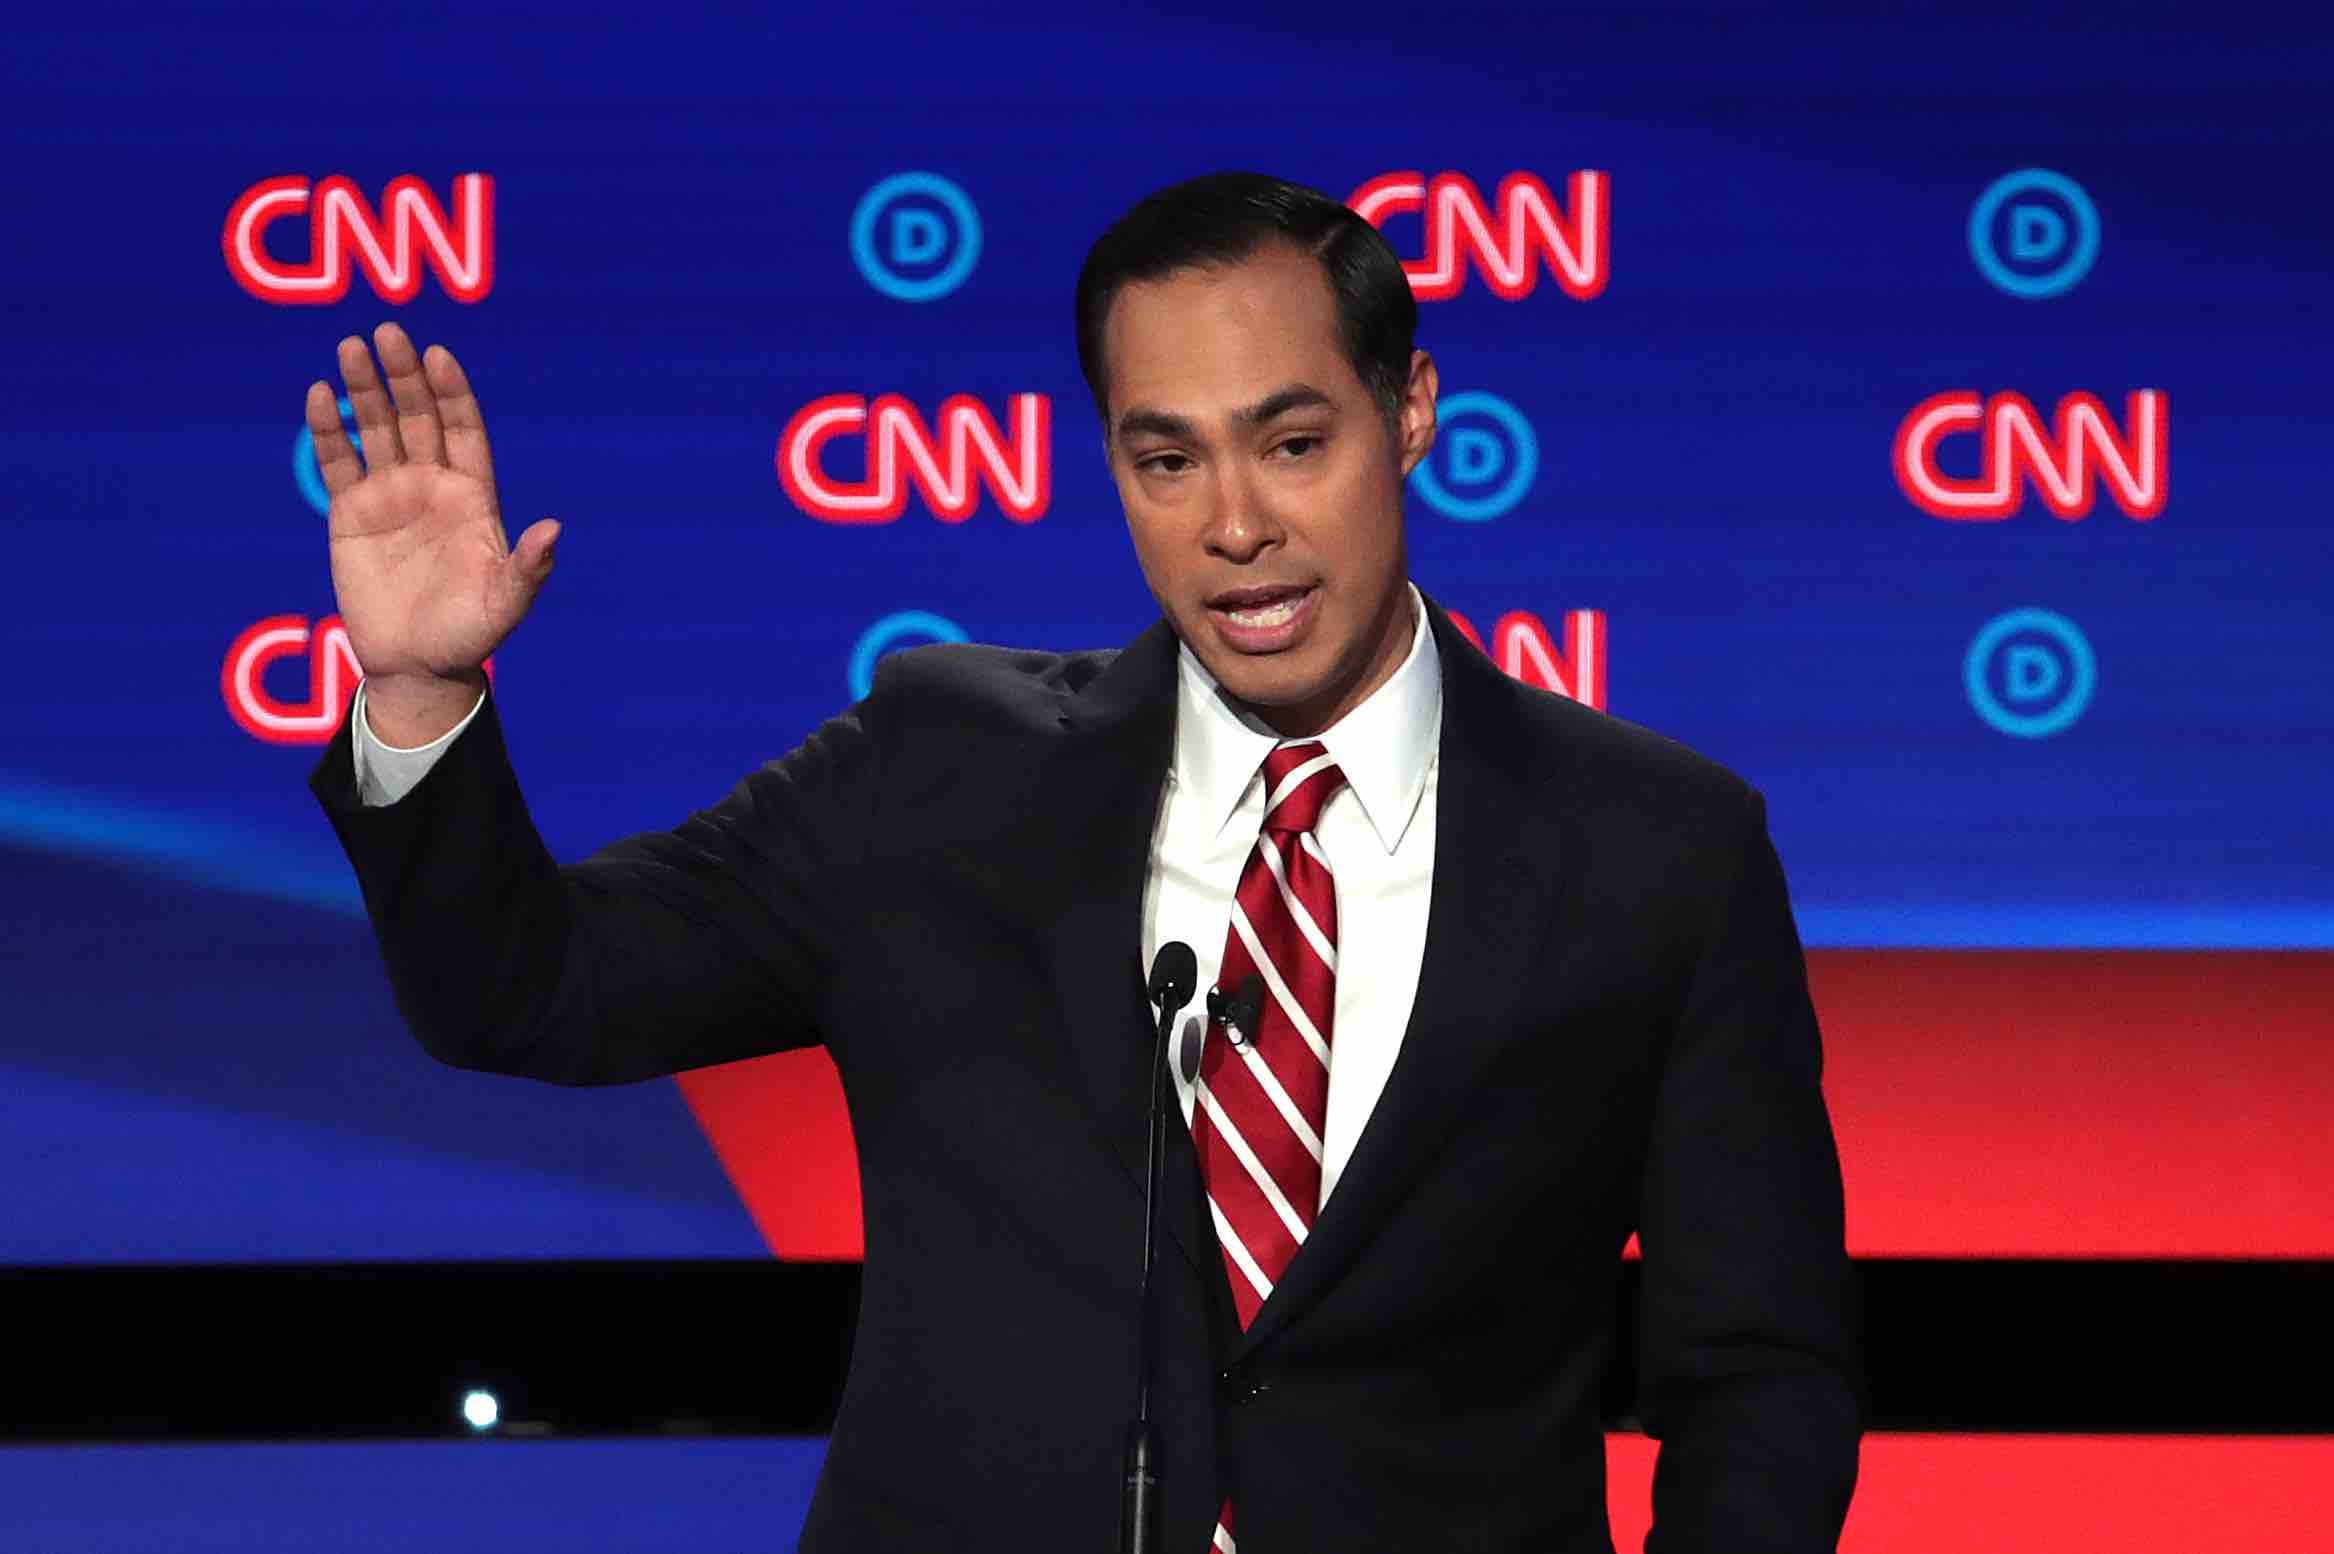 'SNL' Leaving Out Julián Castro From Democratic Debate Sketch Raises Cast Diversity Questions